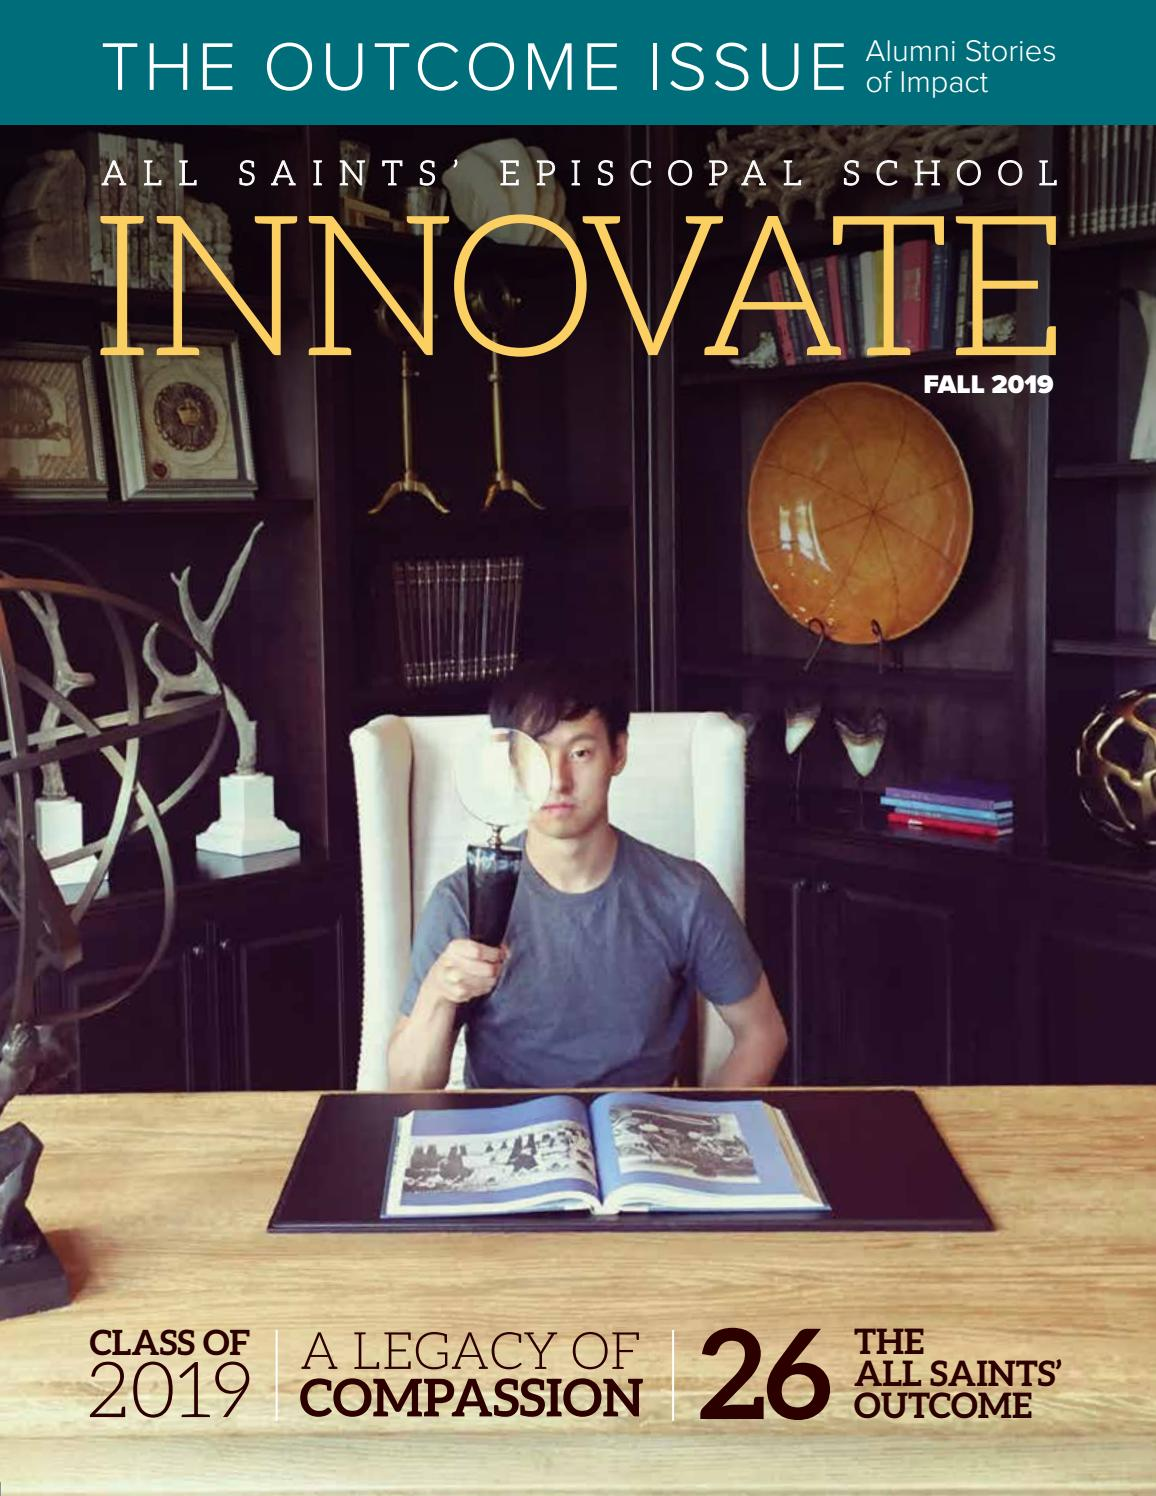 Tremendous Innovate Fall 2019 By All Saints Episcopal School Issuu Gmtry Best Dining Table And Chair Ideas Images Gmtryco